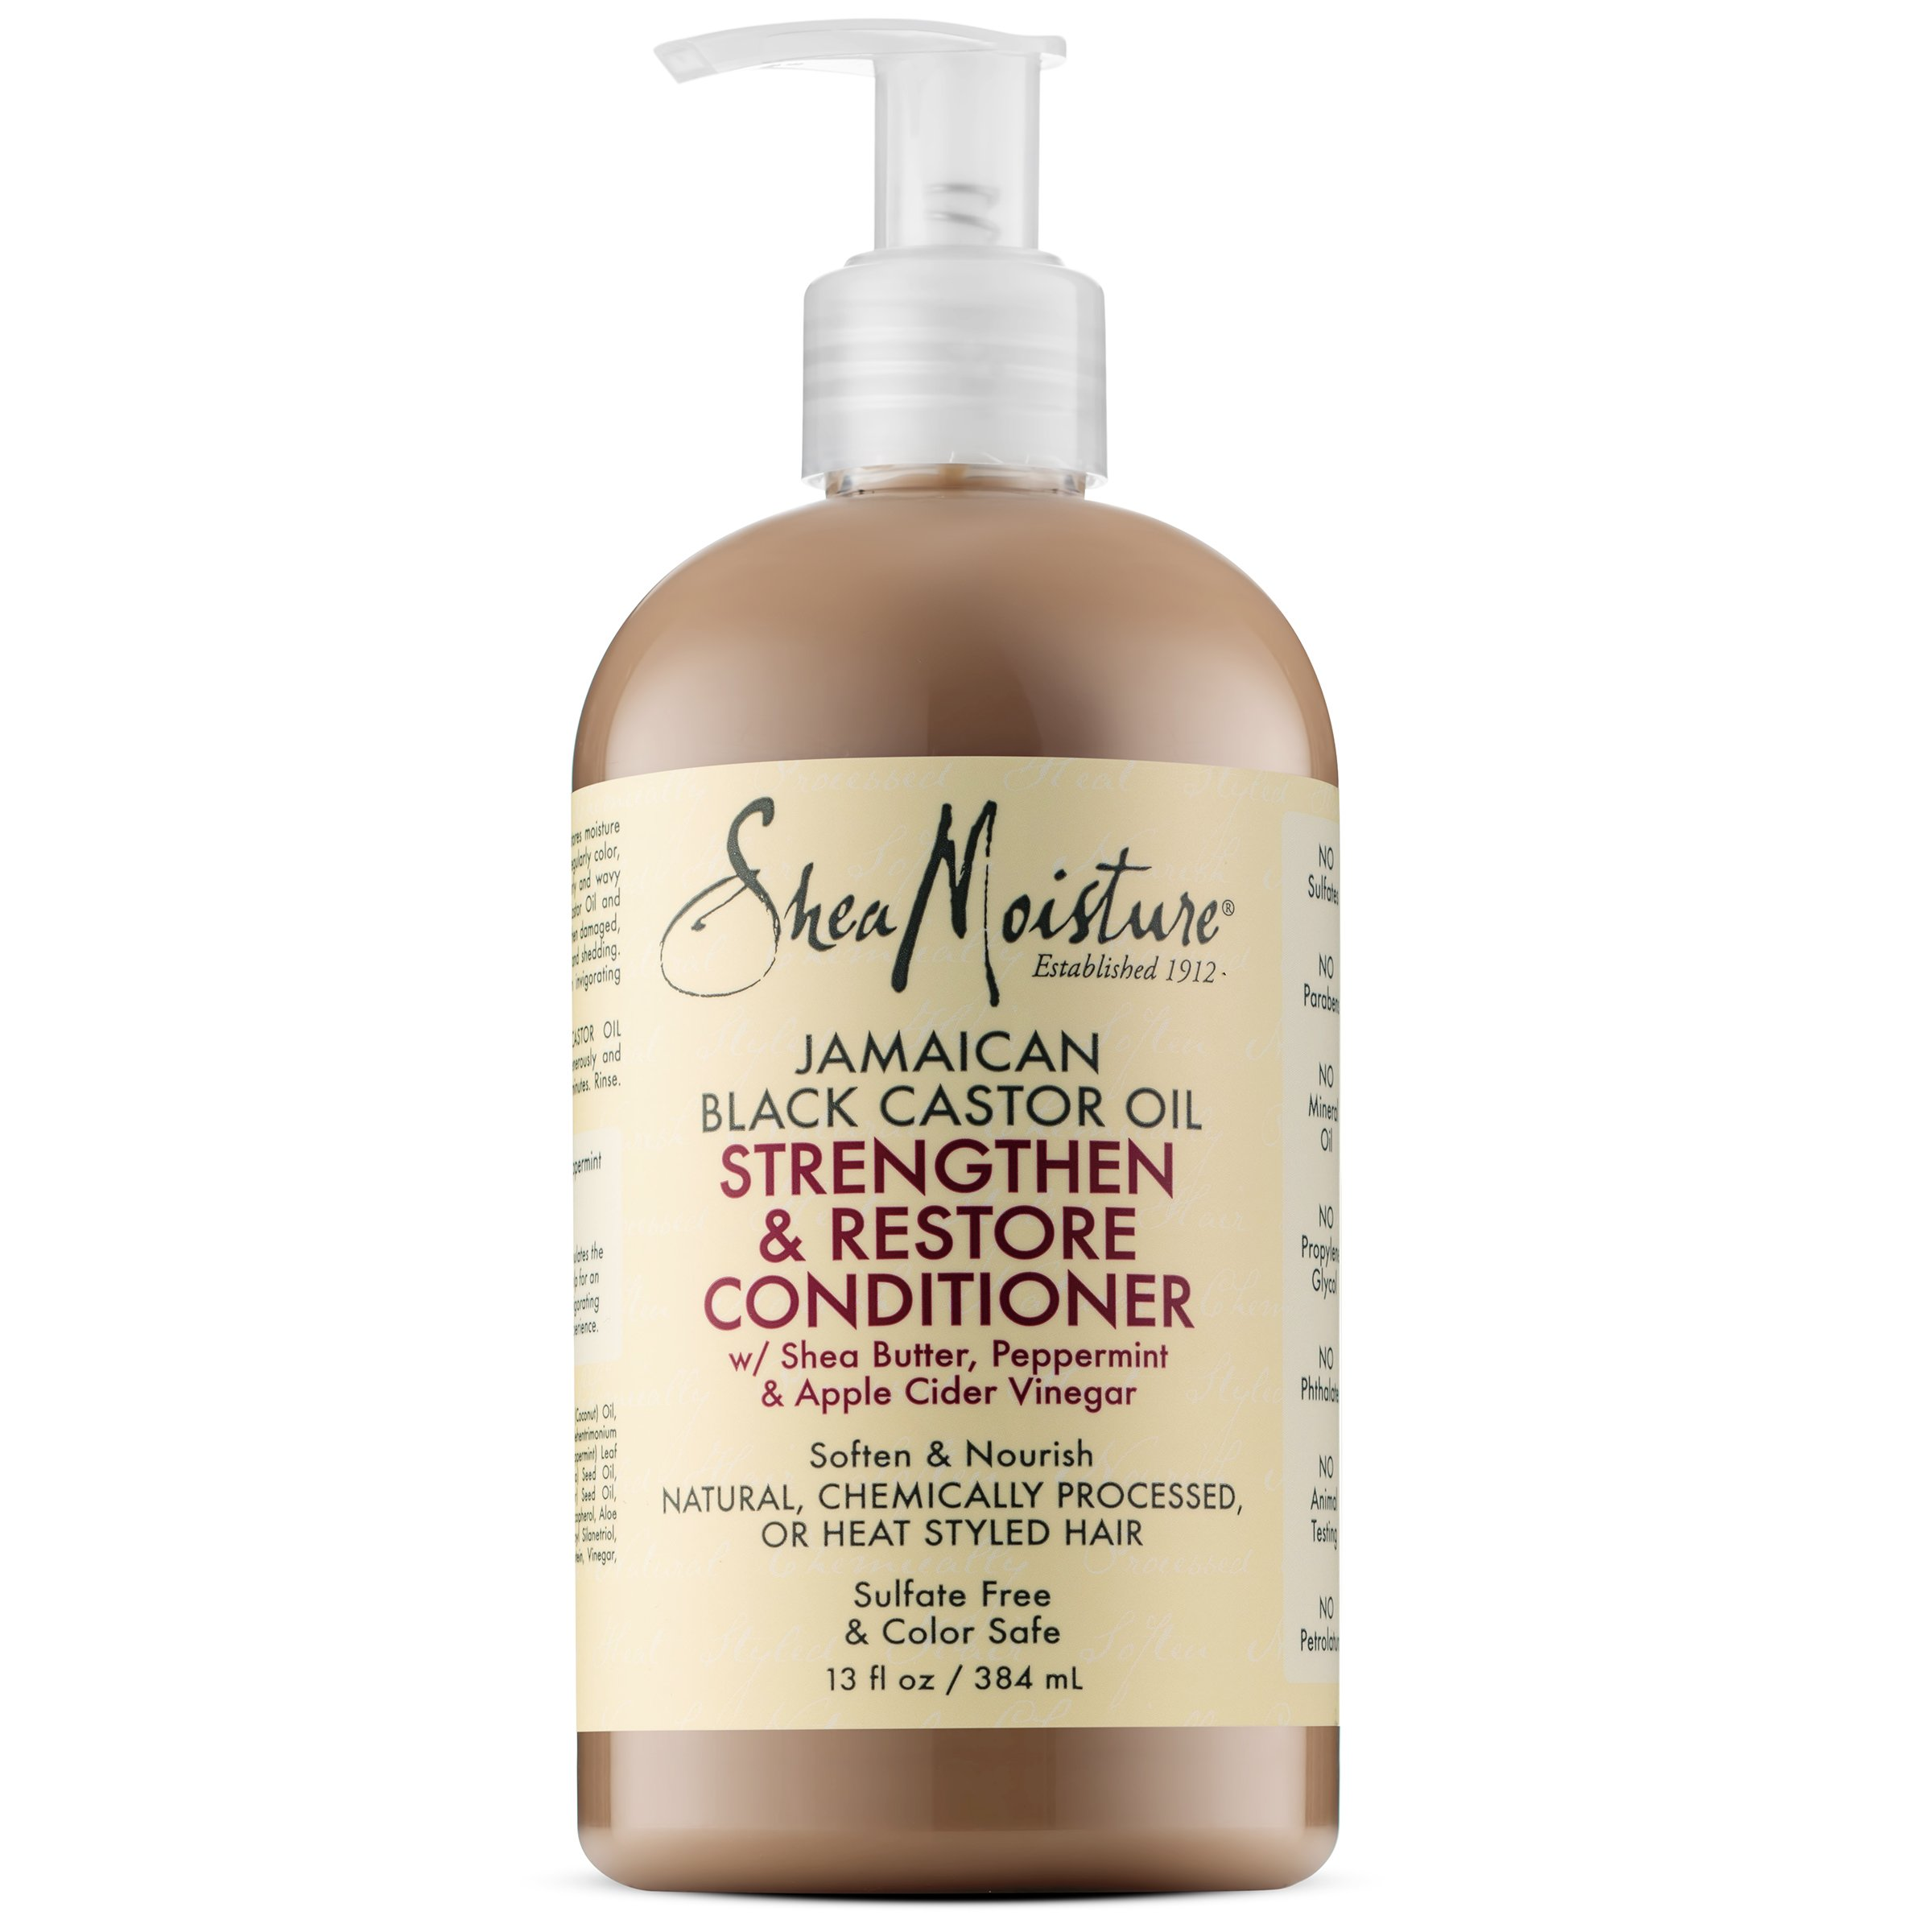 Shea Moisture Jamaican Black Castor Oil 13 oz. Strengthen, Grow & Restore Conditioner with Shea Butter, Peppermint and Keratin - Sulfate Free and Color Safe - Value Pack of 2 Each